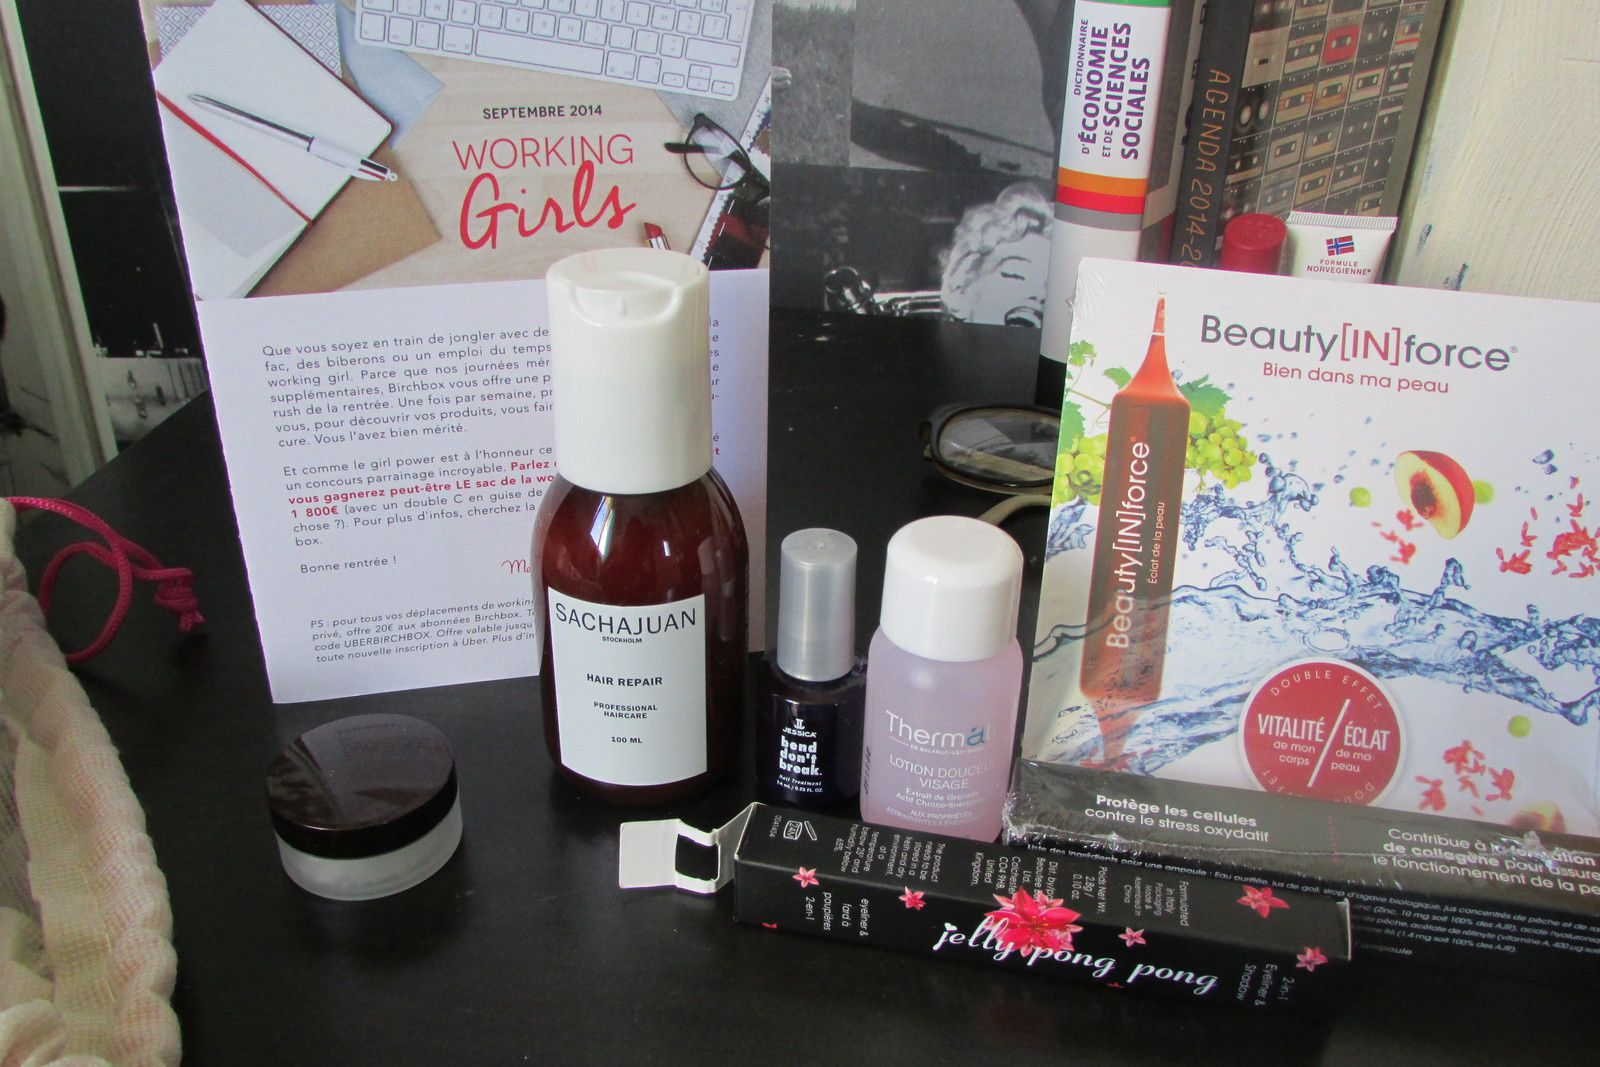 birchbox septembre 2014 - working girl